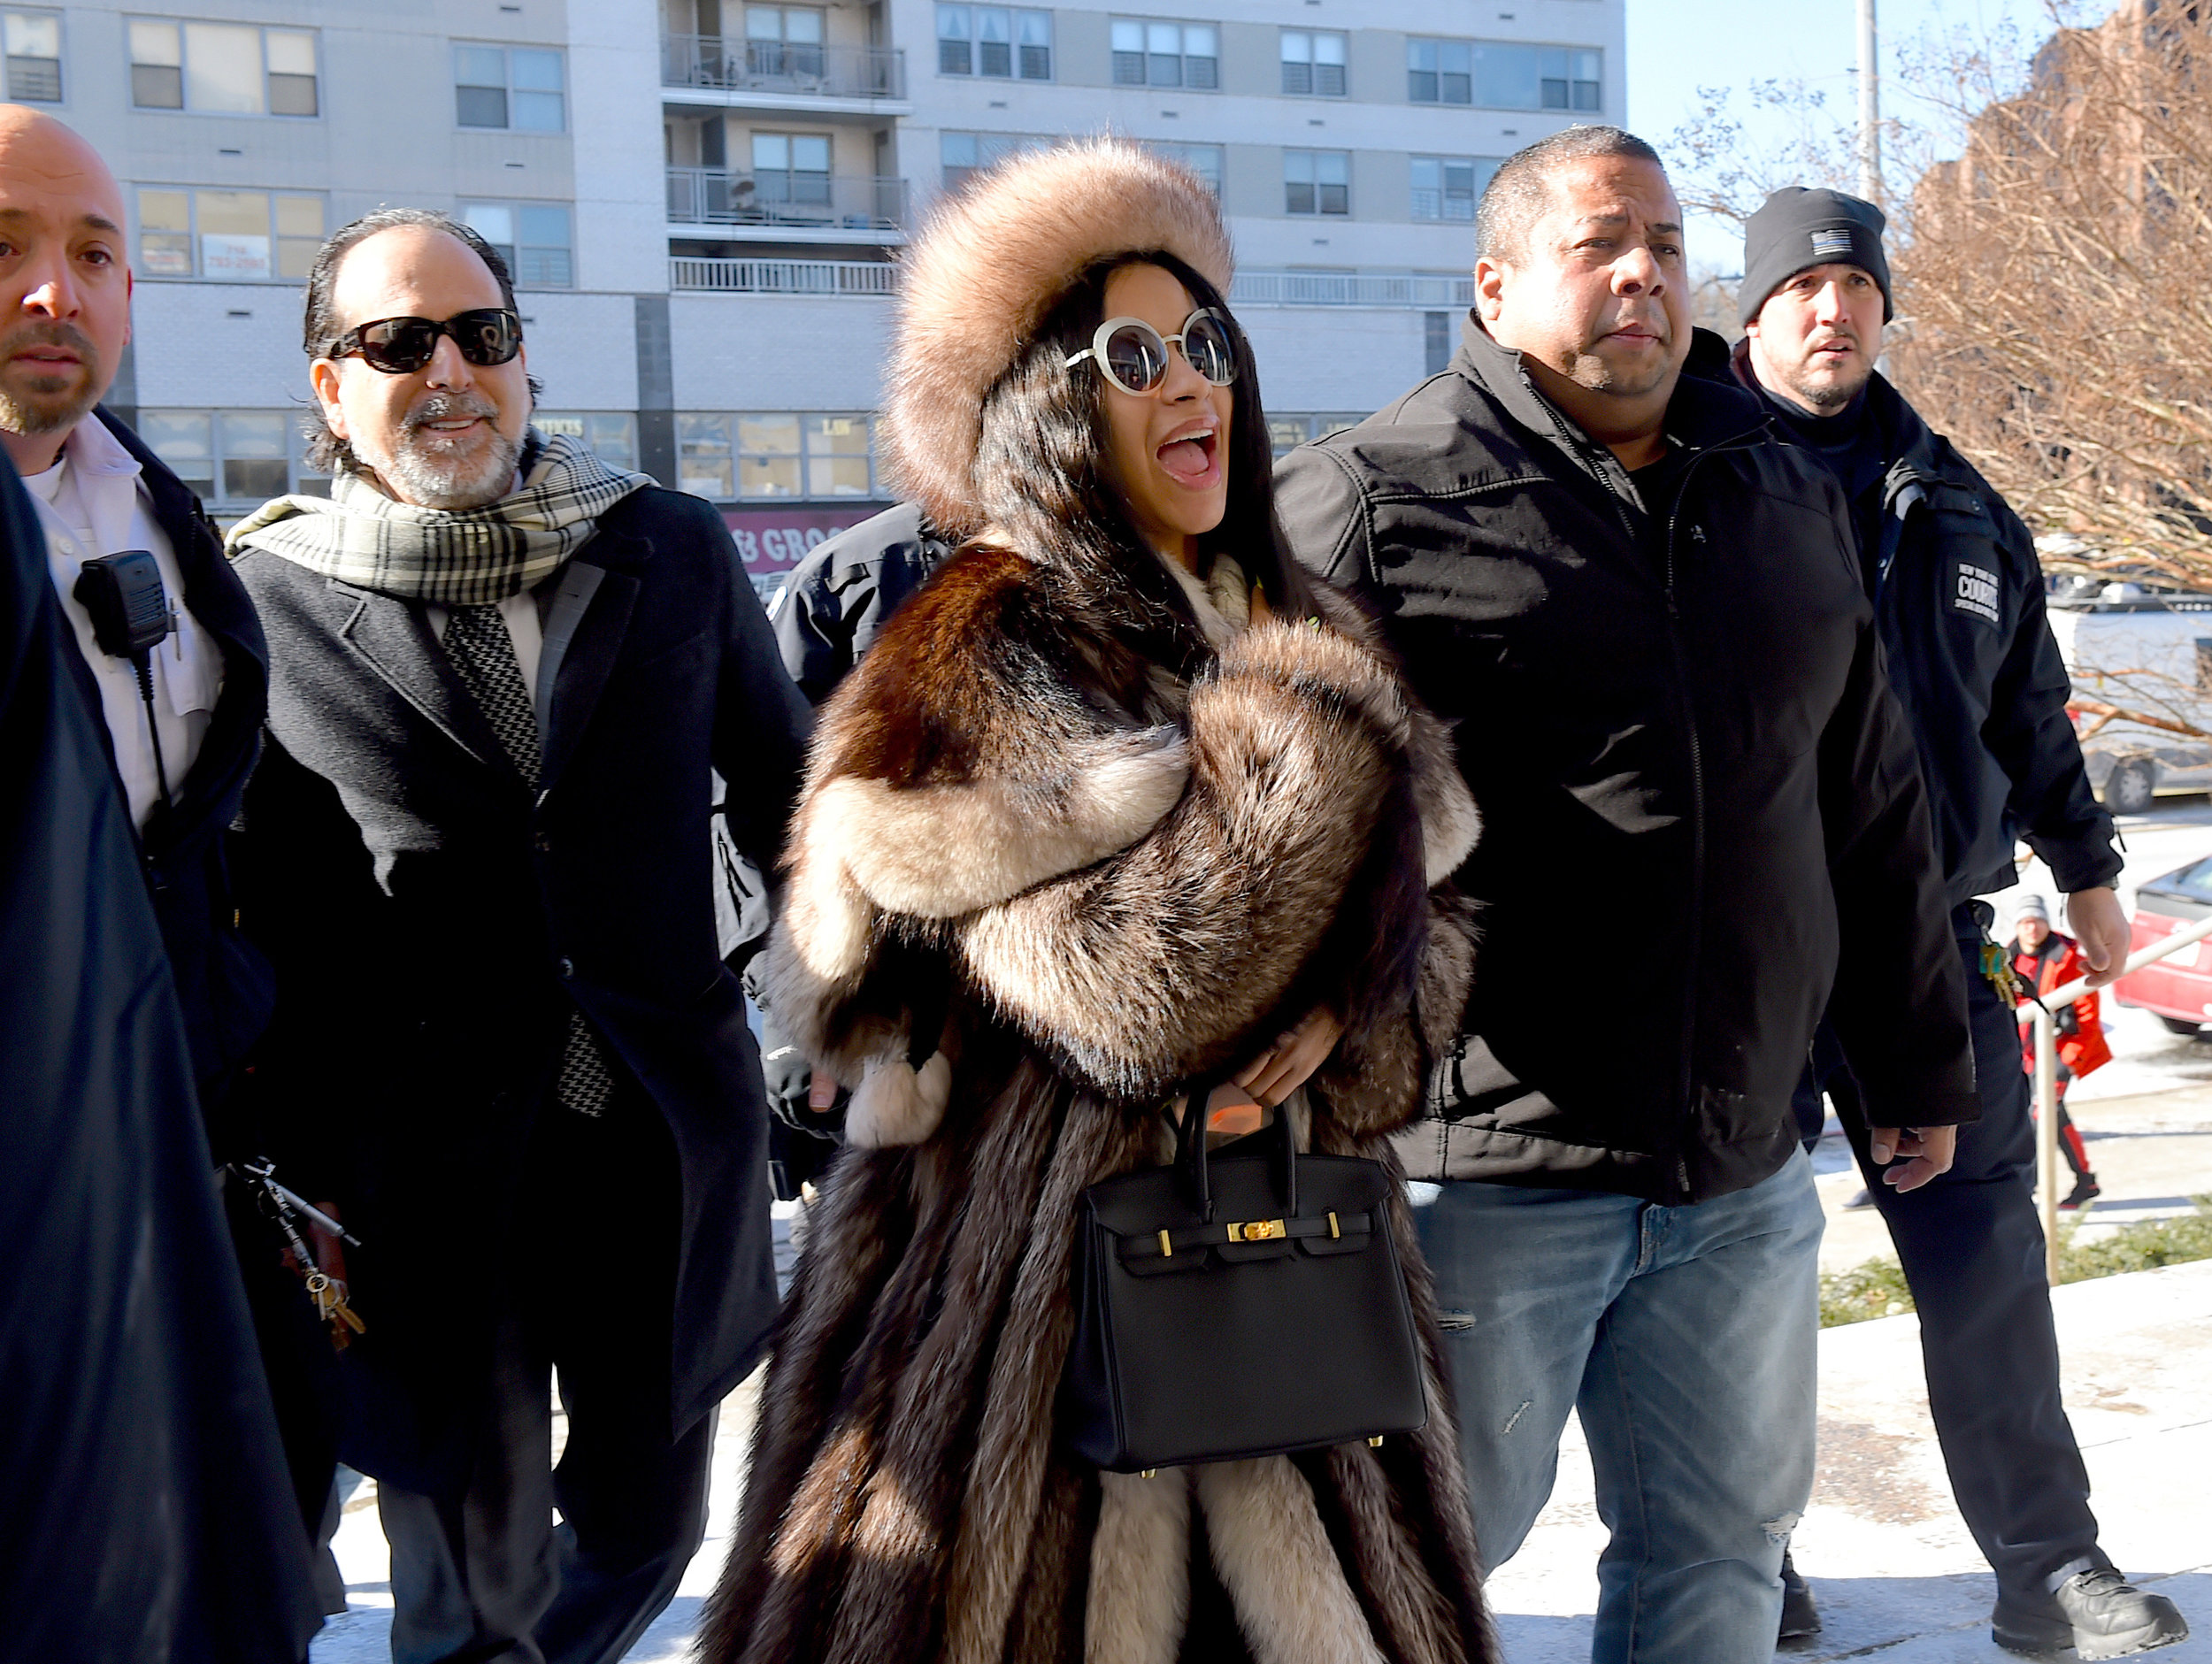 Cardi B outside of Queens Criminal Courthouse on Thursday, Jan. 31.  Eagle  photo by Todd Maisel